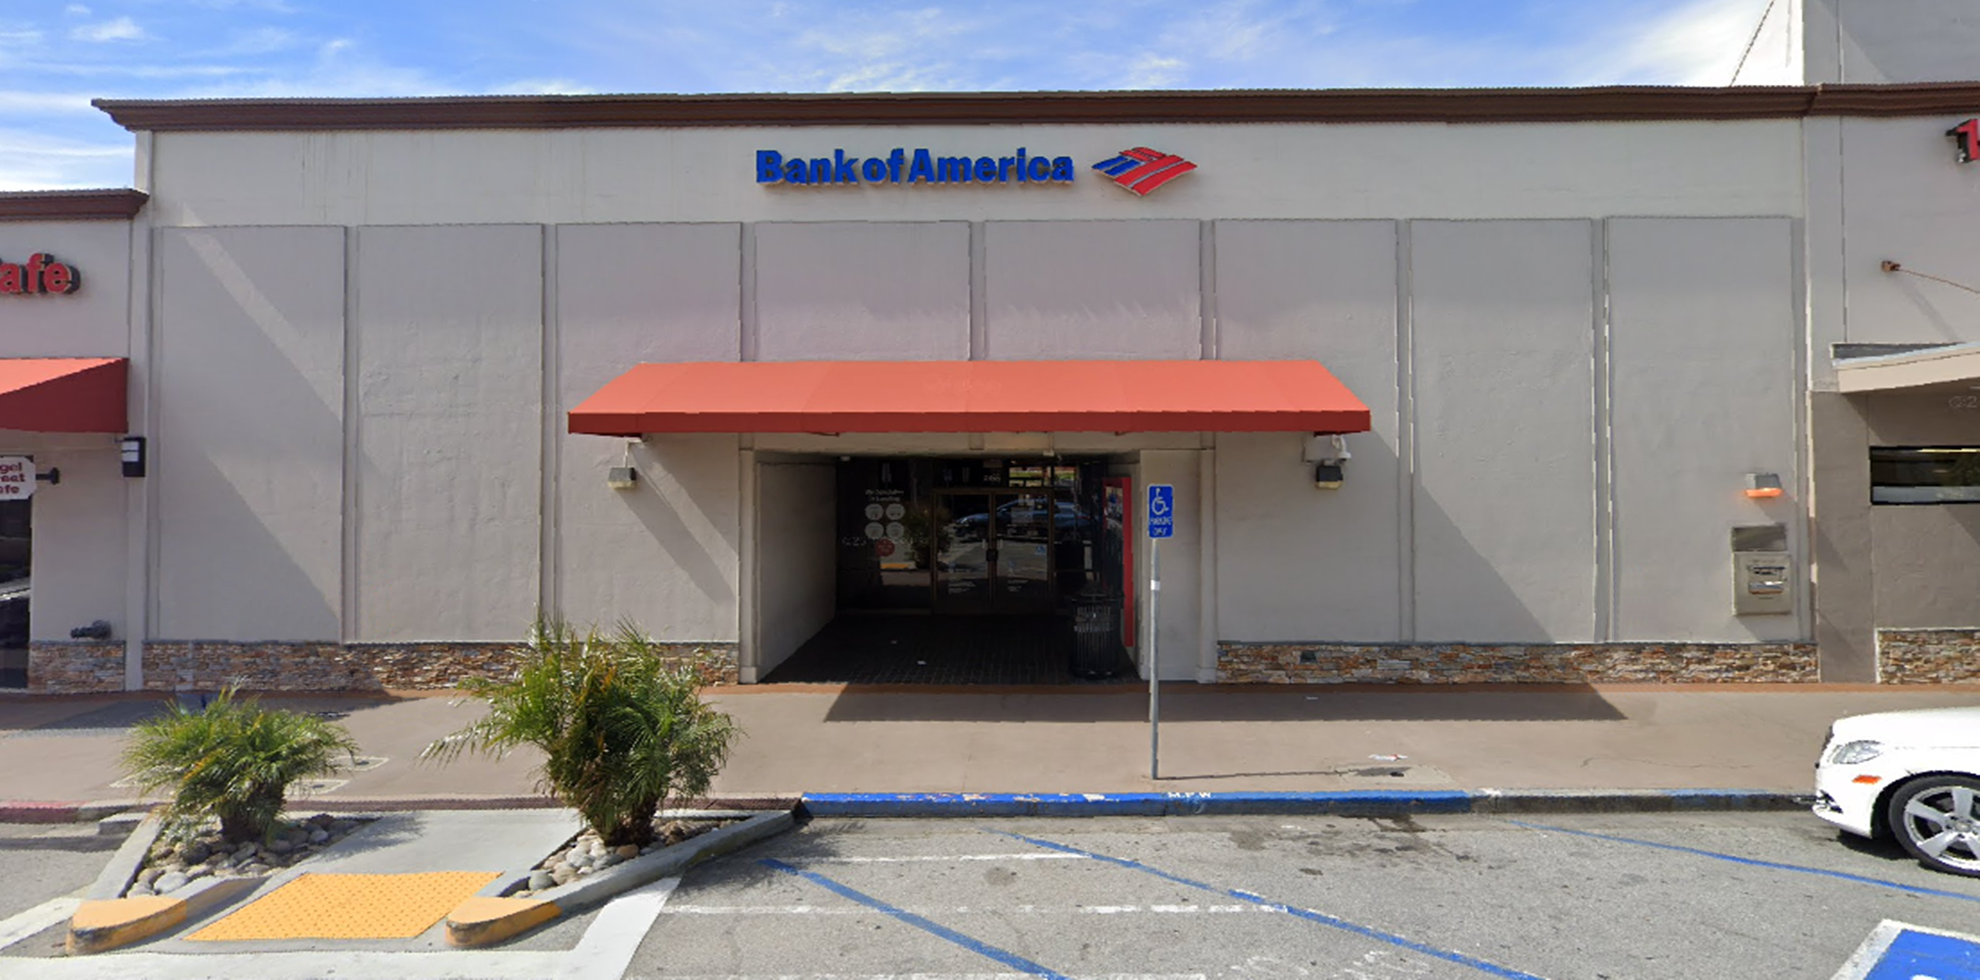 Bank of America financial center with walk-up ATM   555 Broadway, Millbrae, CA 94030